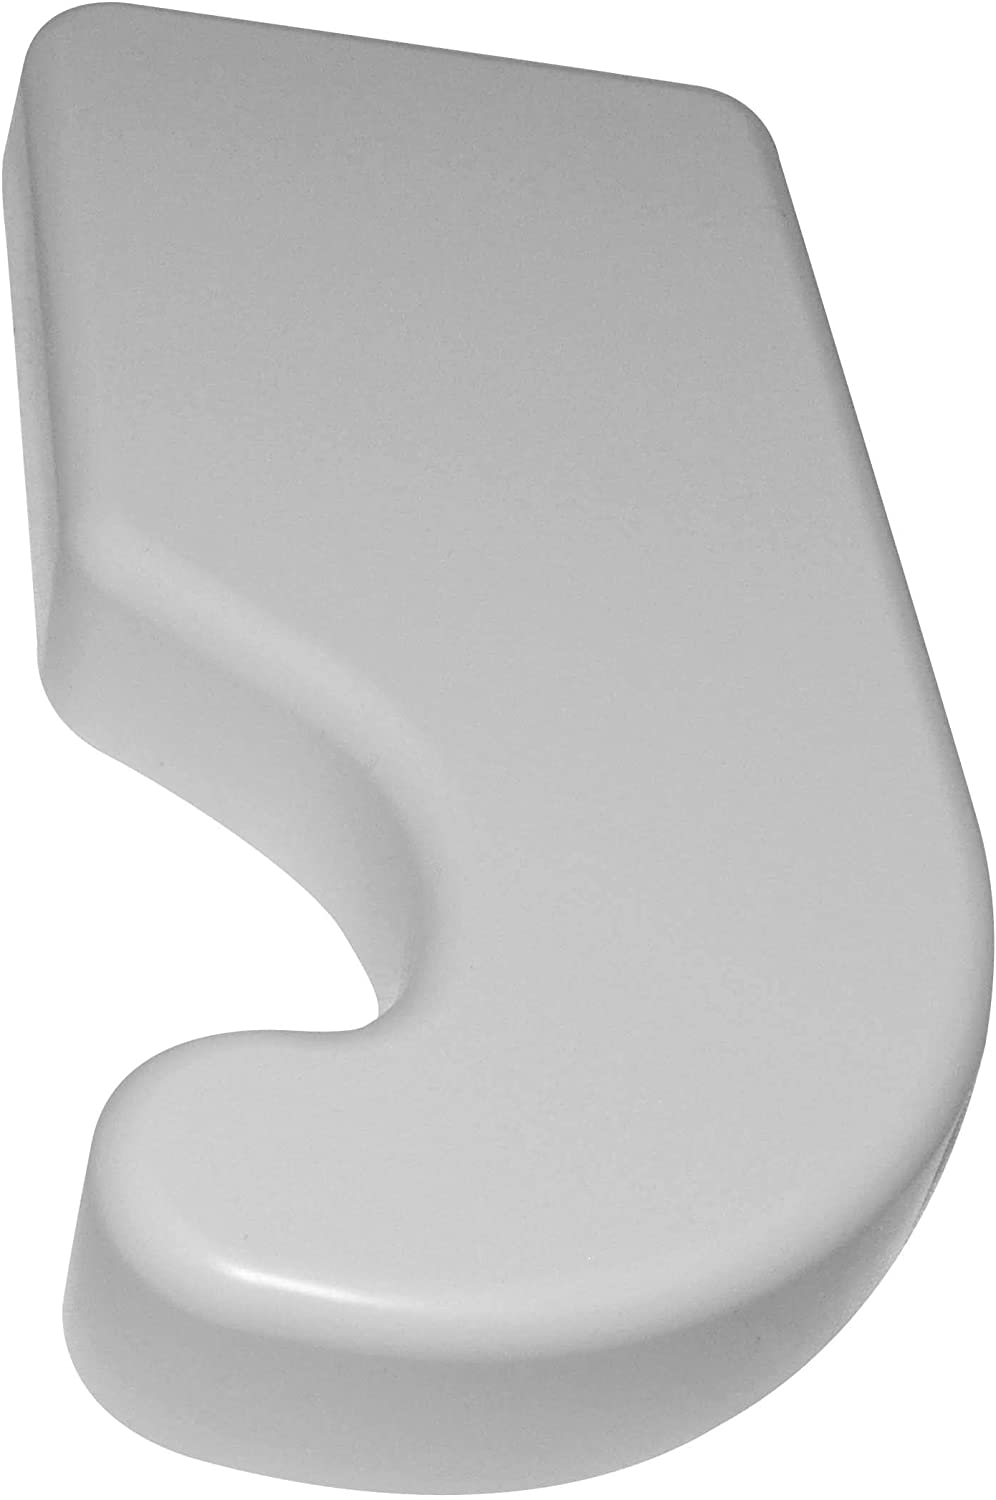 Whirlpool W10331654A Refrigerator Left Hinge Cover, White